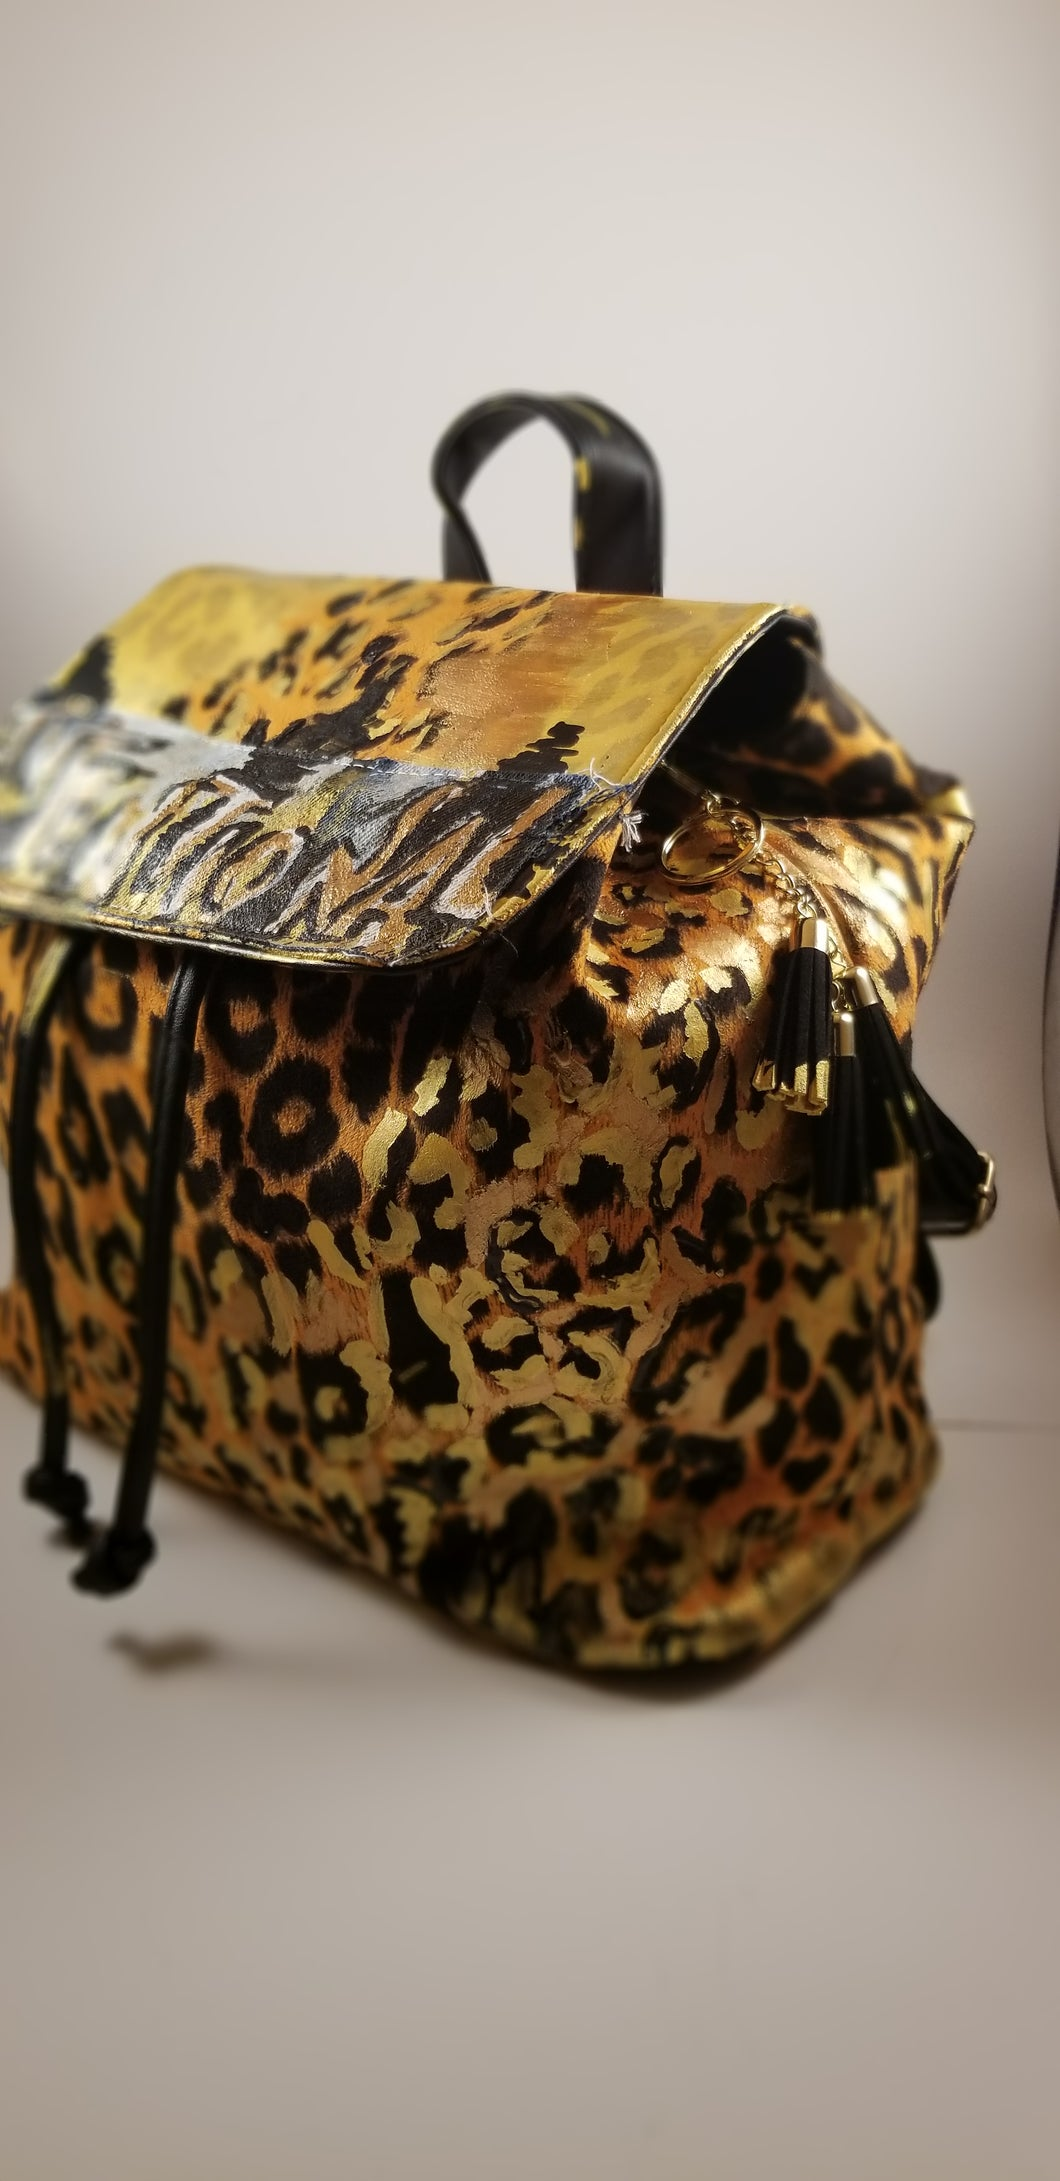 Custom Embellished Book Bag